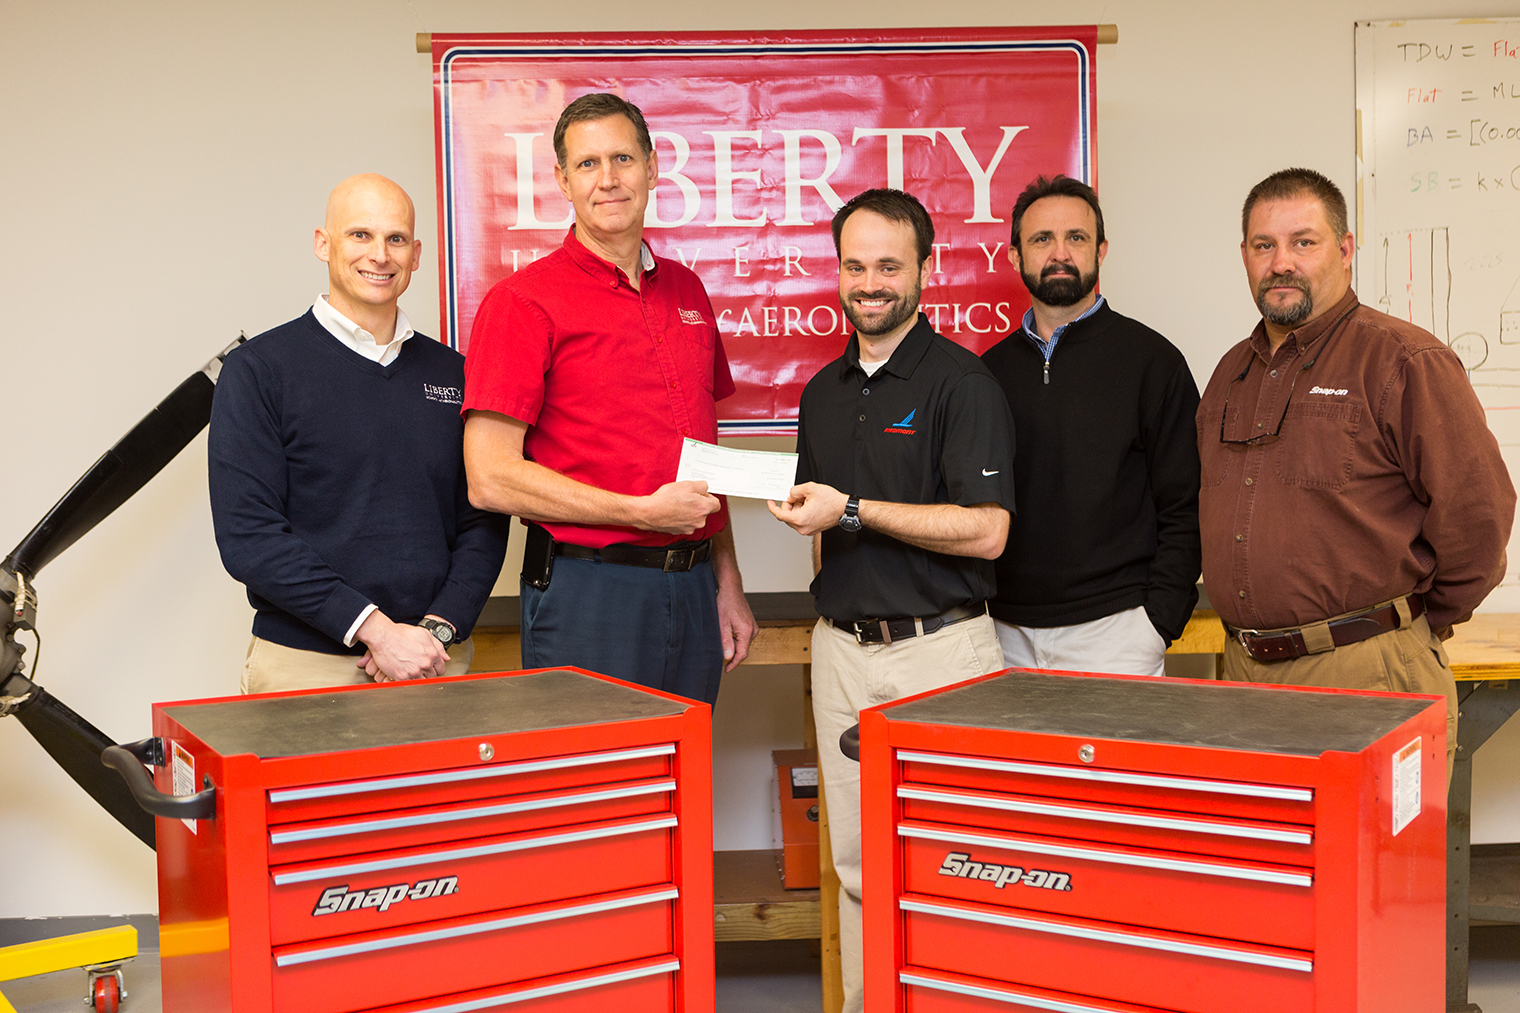 Bob Hudson (left), assistant dean of Liberty University School of Aeronautics, and Bob Howell, director of Liberty's Aviation Maintenance Technician Program, stand with representatives from Piedmont Airlines and Snap-on.